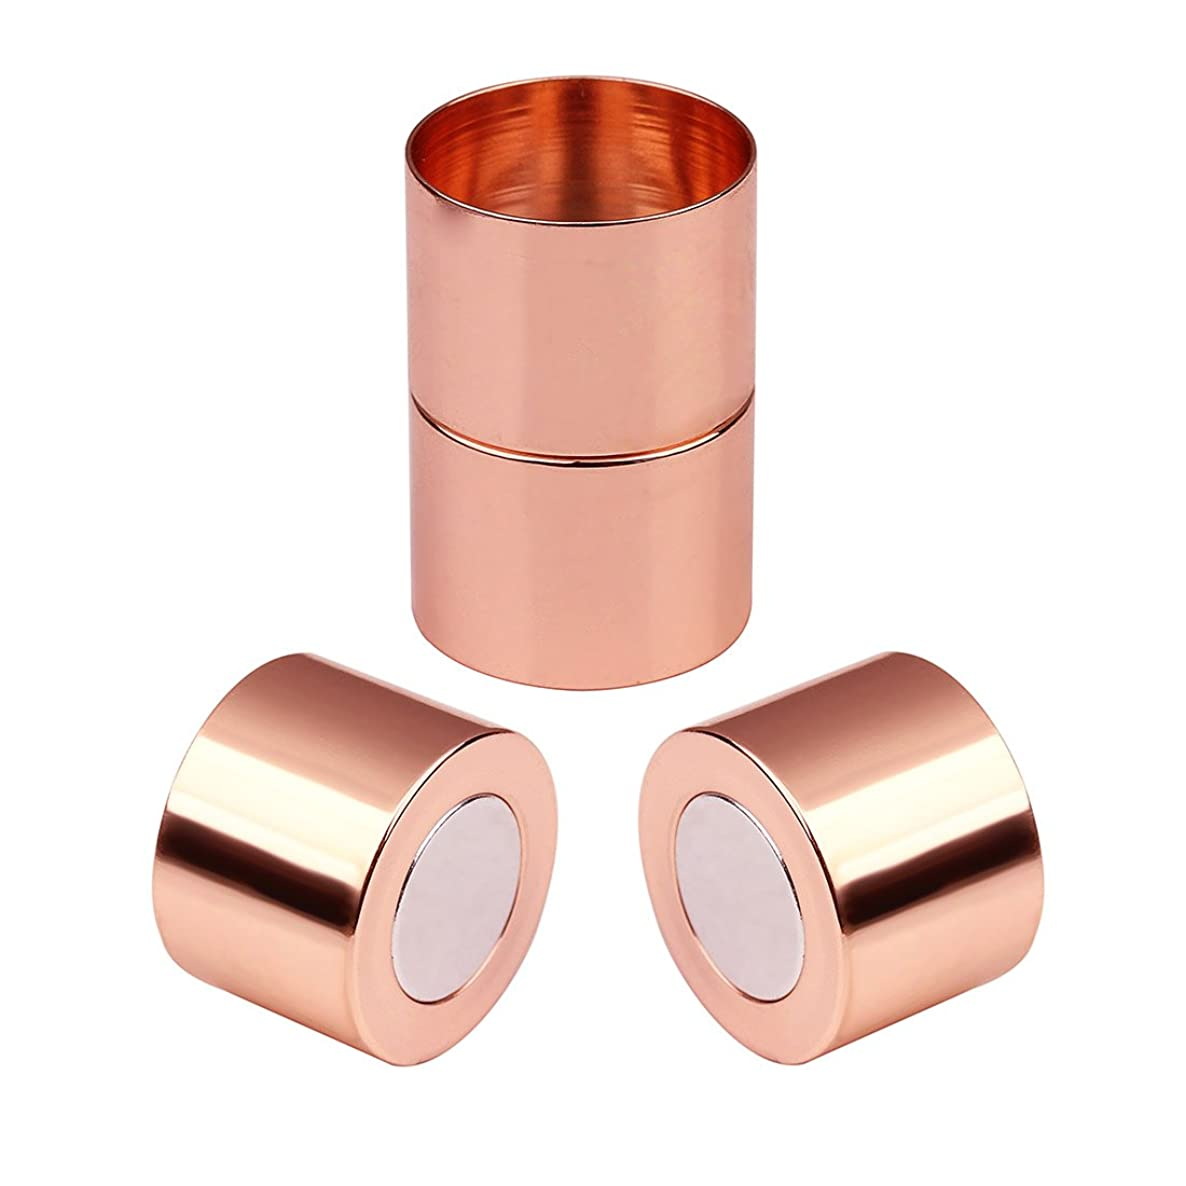 Linsoir Beads Inner Hole 15mm Large Glue-in Magnetic Clasps for 15mm Round Cords 10 Sets